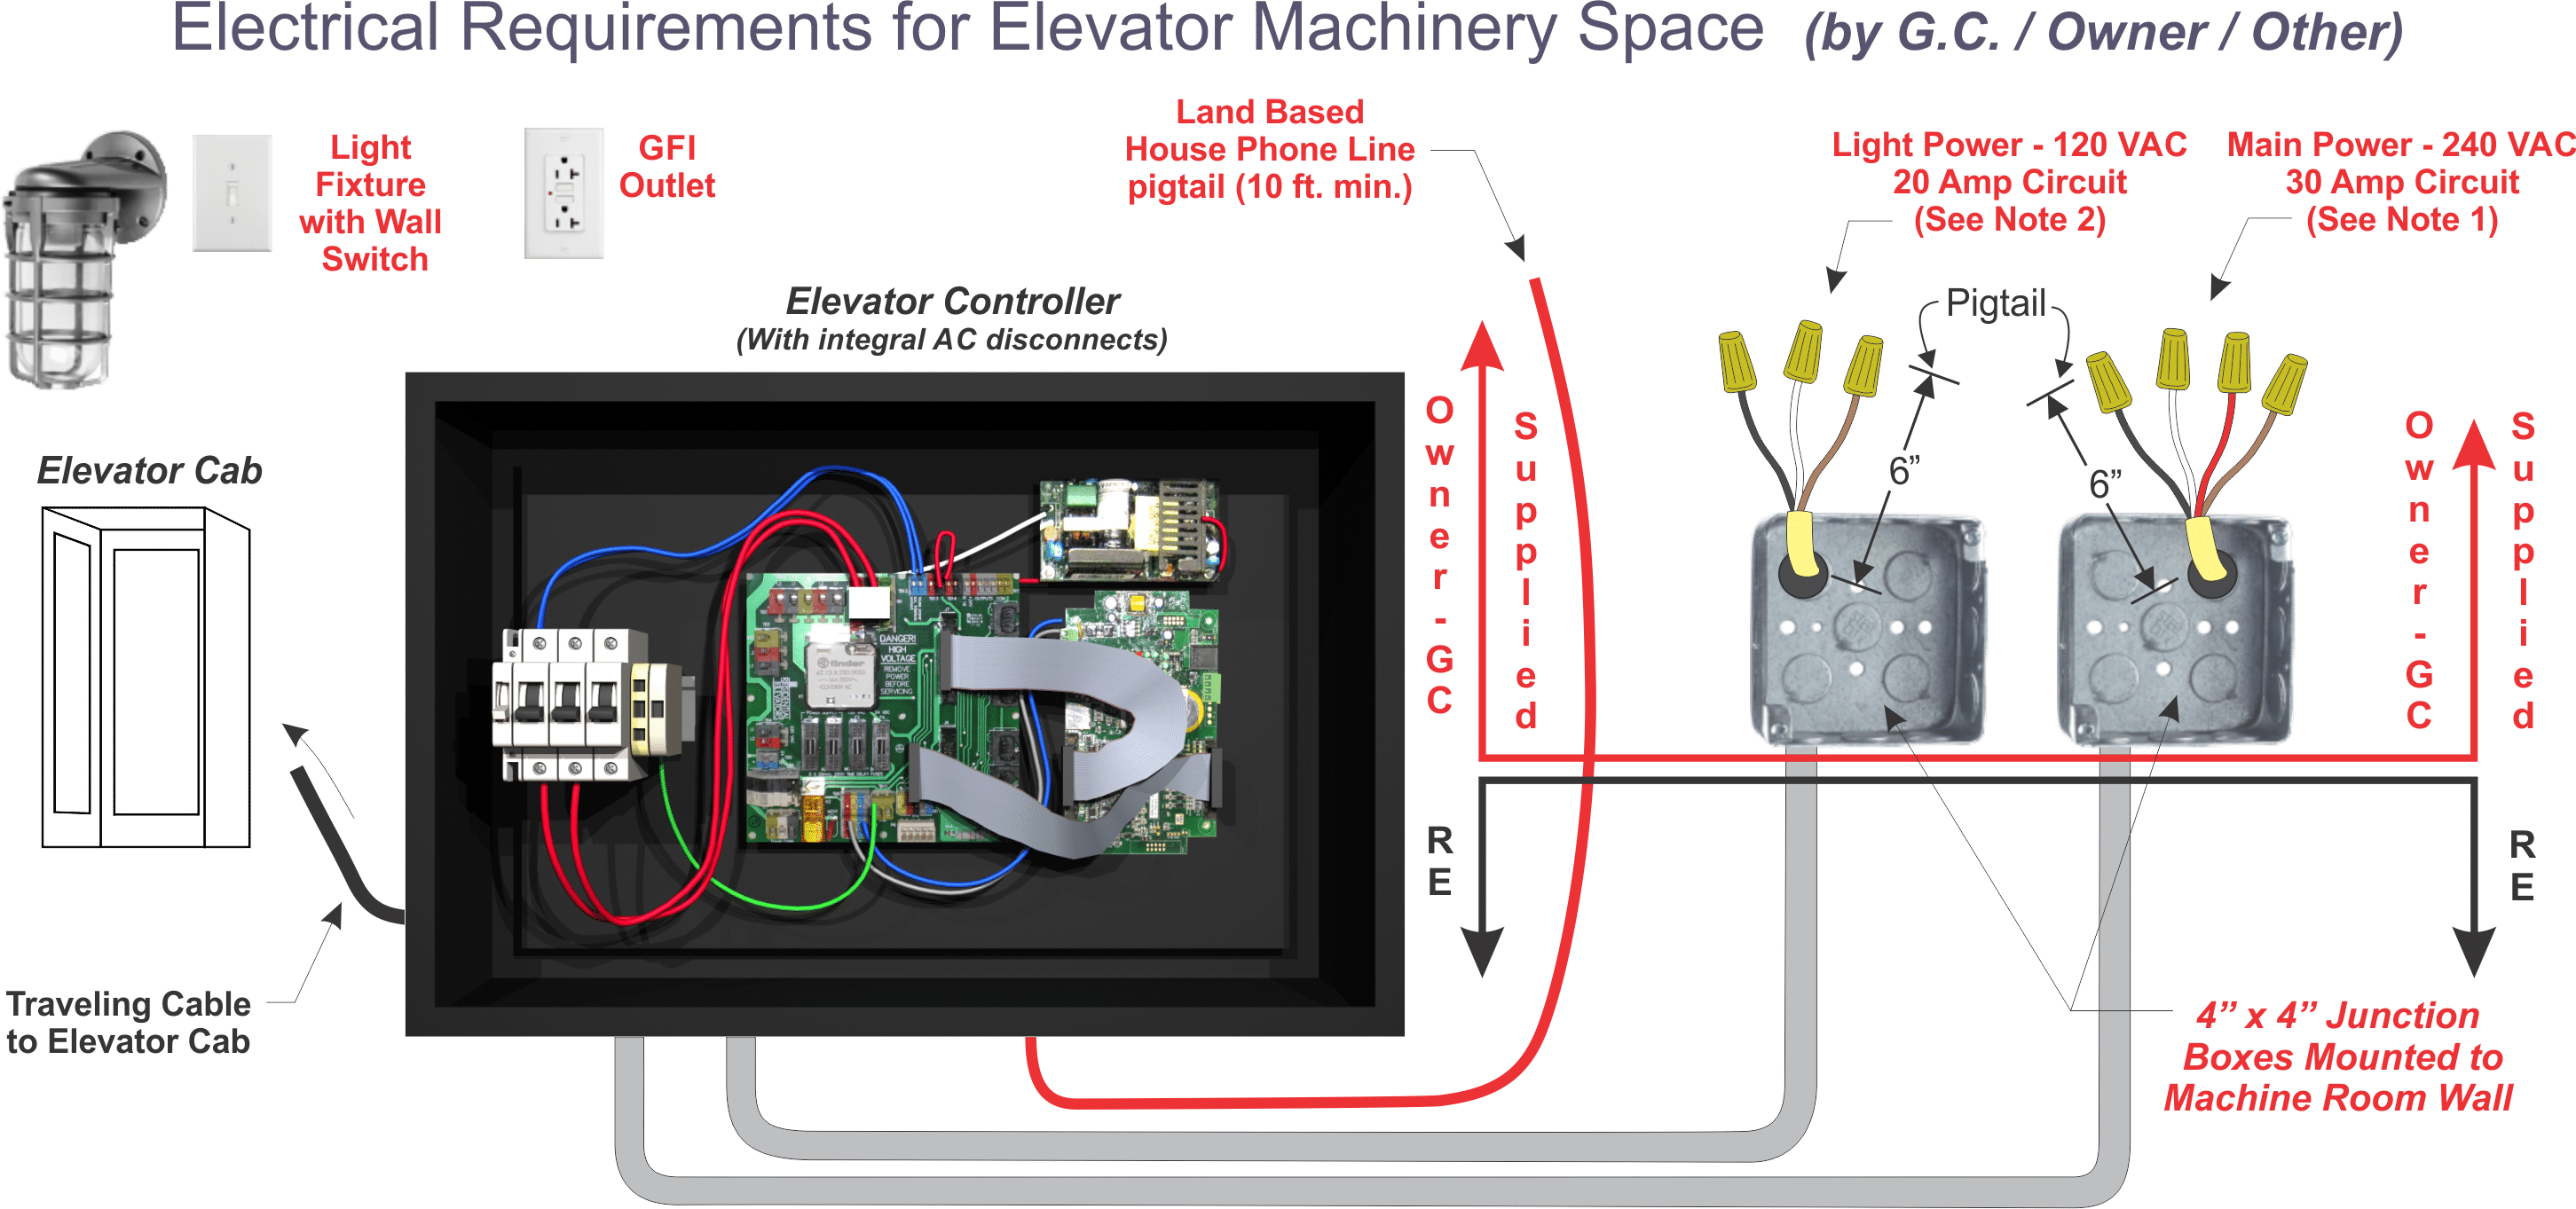 home elevator wiring diagram wiring libraryeach home elevator electrical requirements